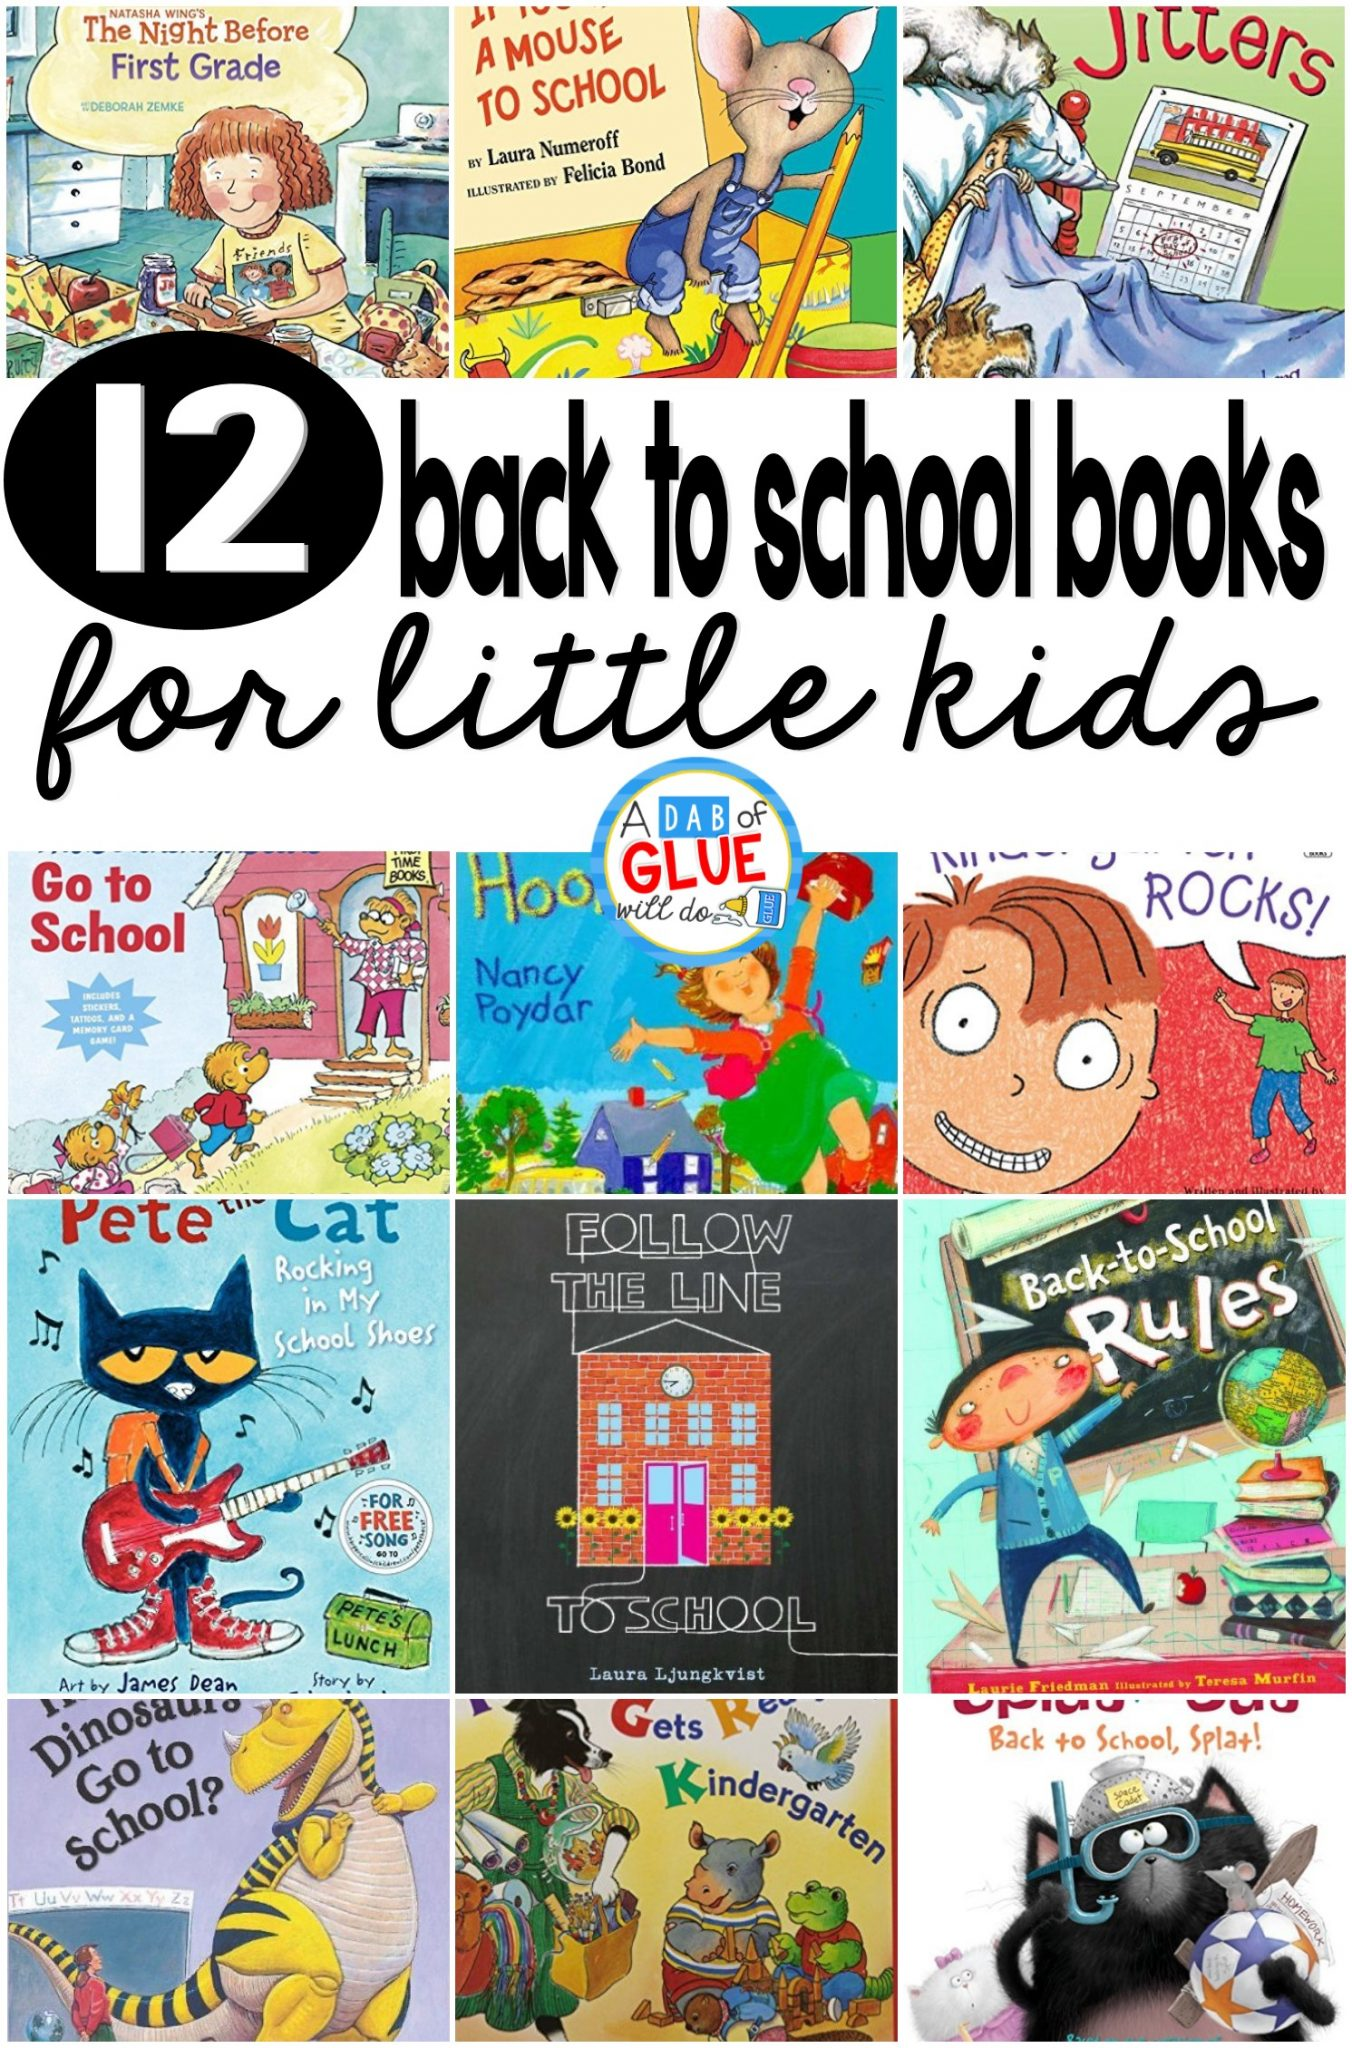 12 back to school books for little kids